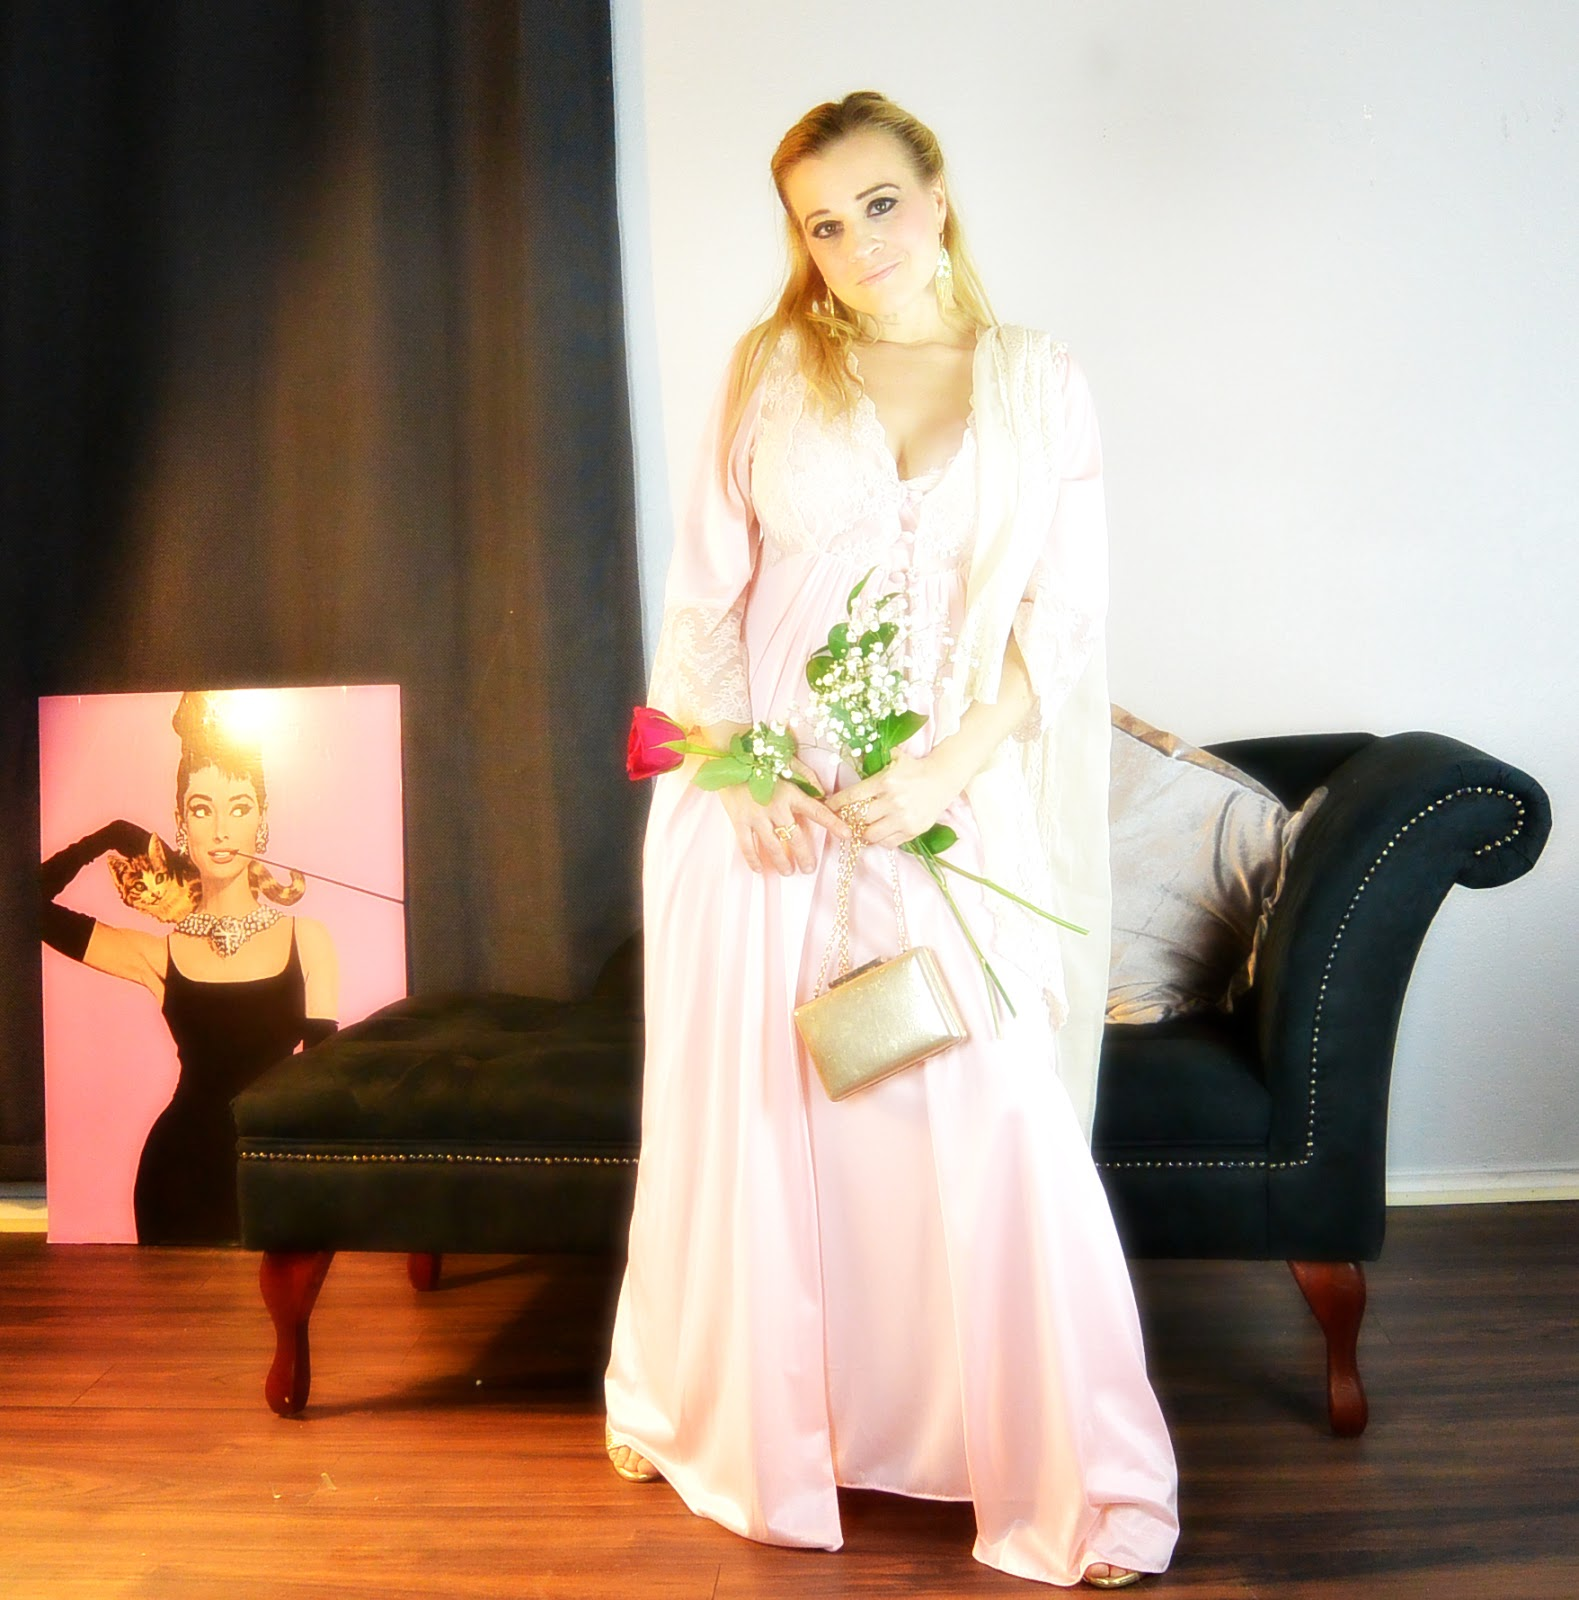 blonde modeling vintage nightgown while standing with rose